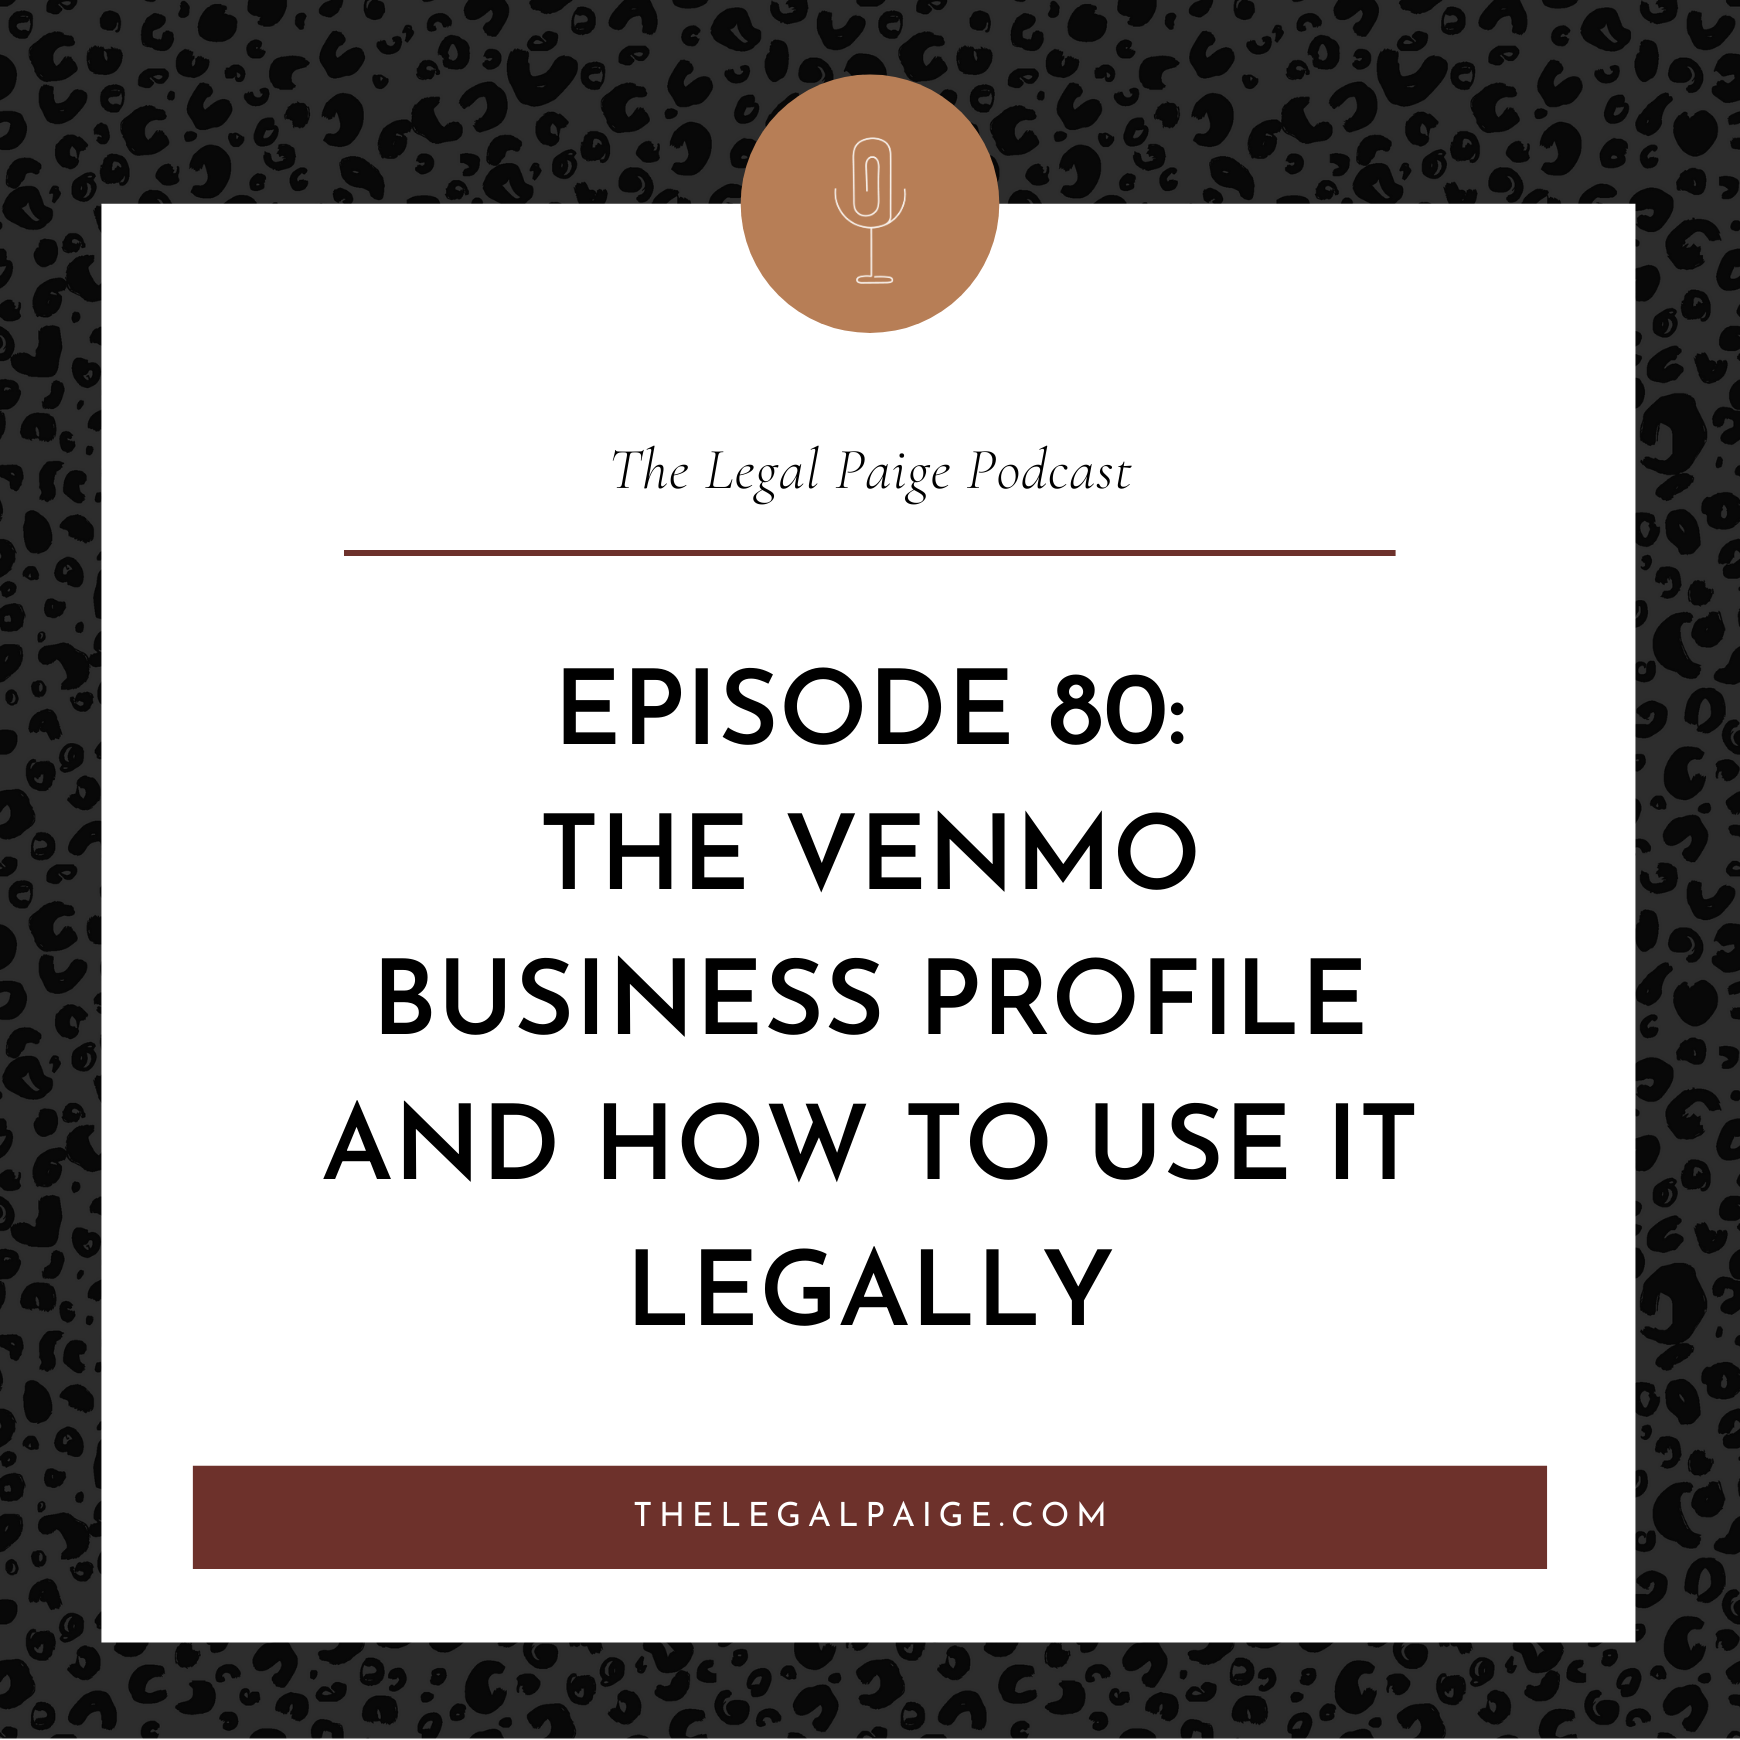 Episode 80: The Venmo Business Profile And How To Use It Legally